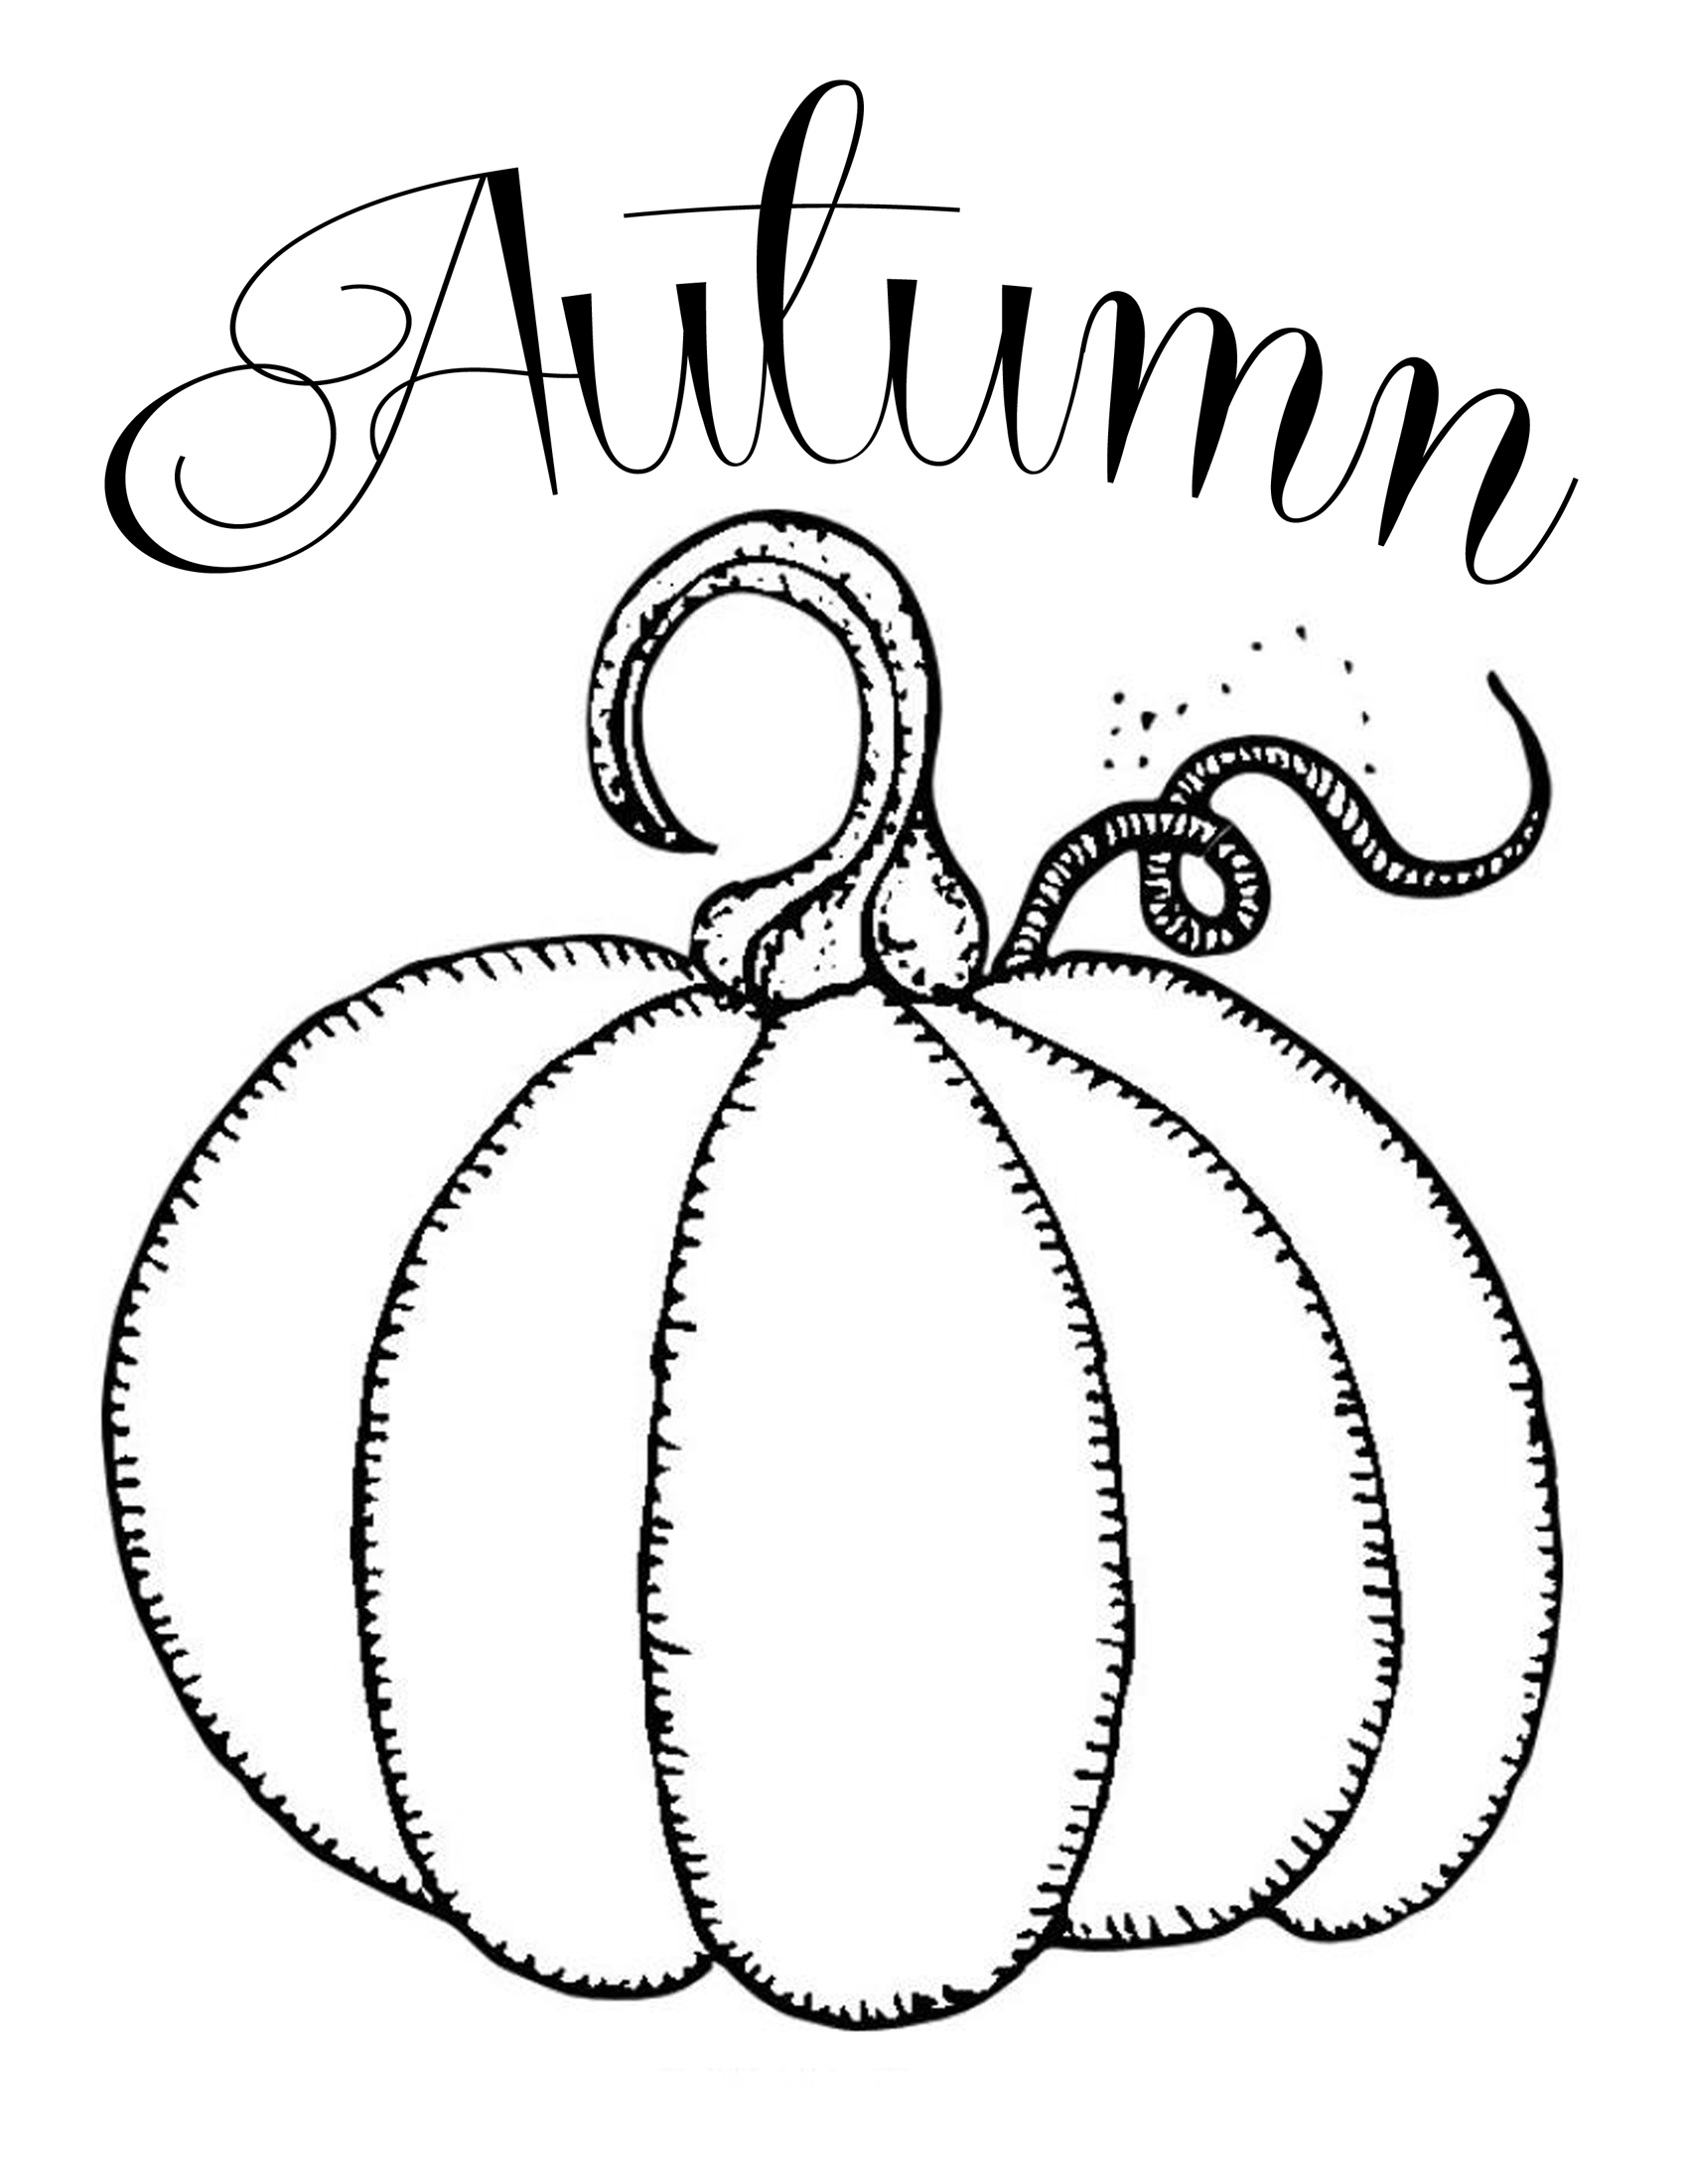 Simple Pumpkin Drawing at GetDrawings.com | Free for personal use ...